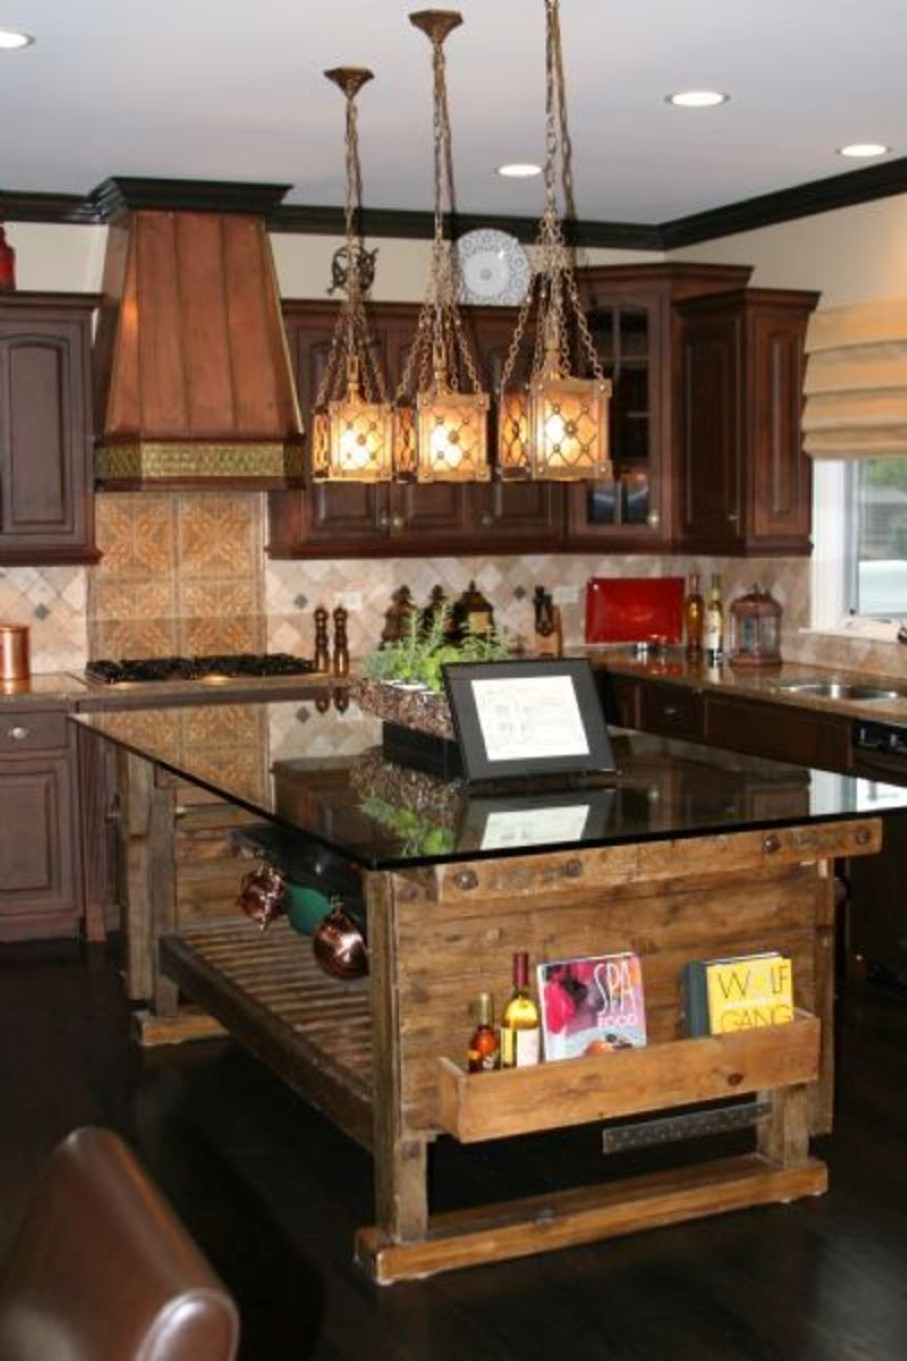 Simple Kitchen Design Home Interior: Sweet Country Rustic Kitchen Idea